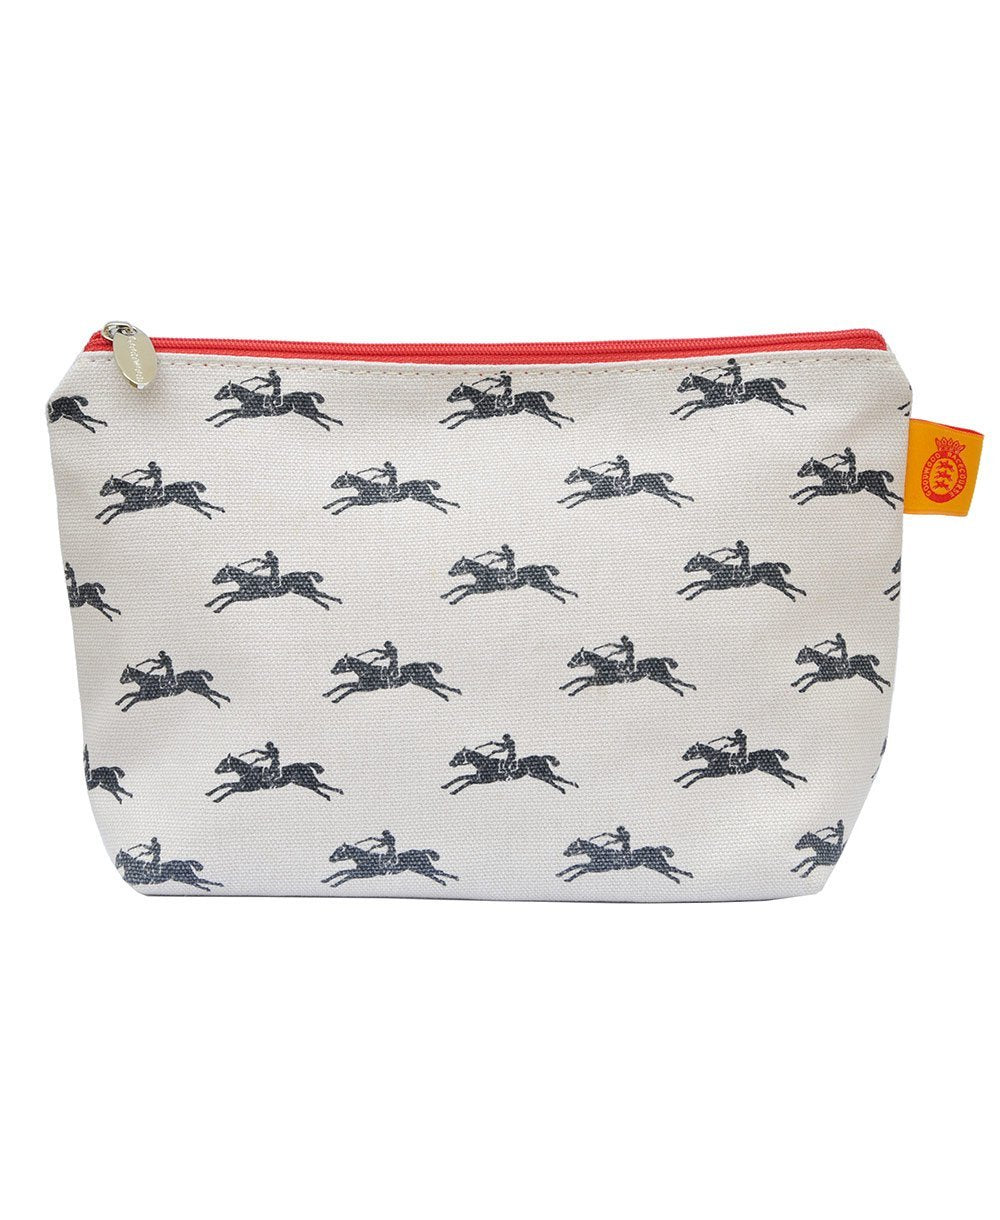 Goodwood Racecourse Stubbs Horses Cosmetic Bag